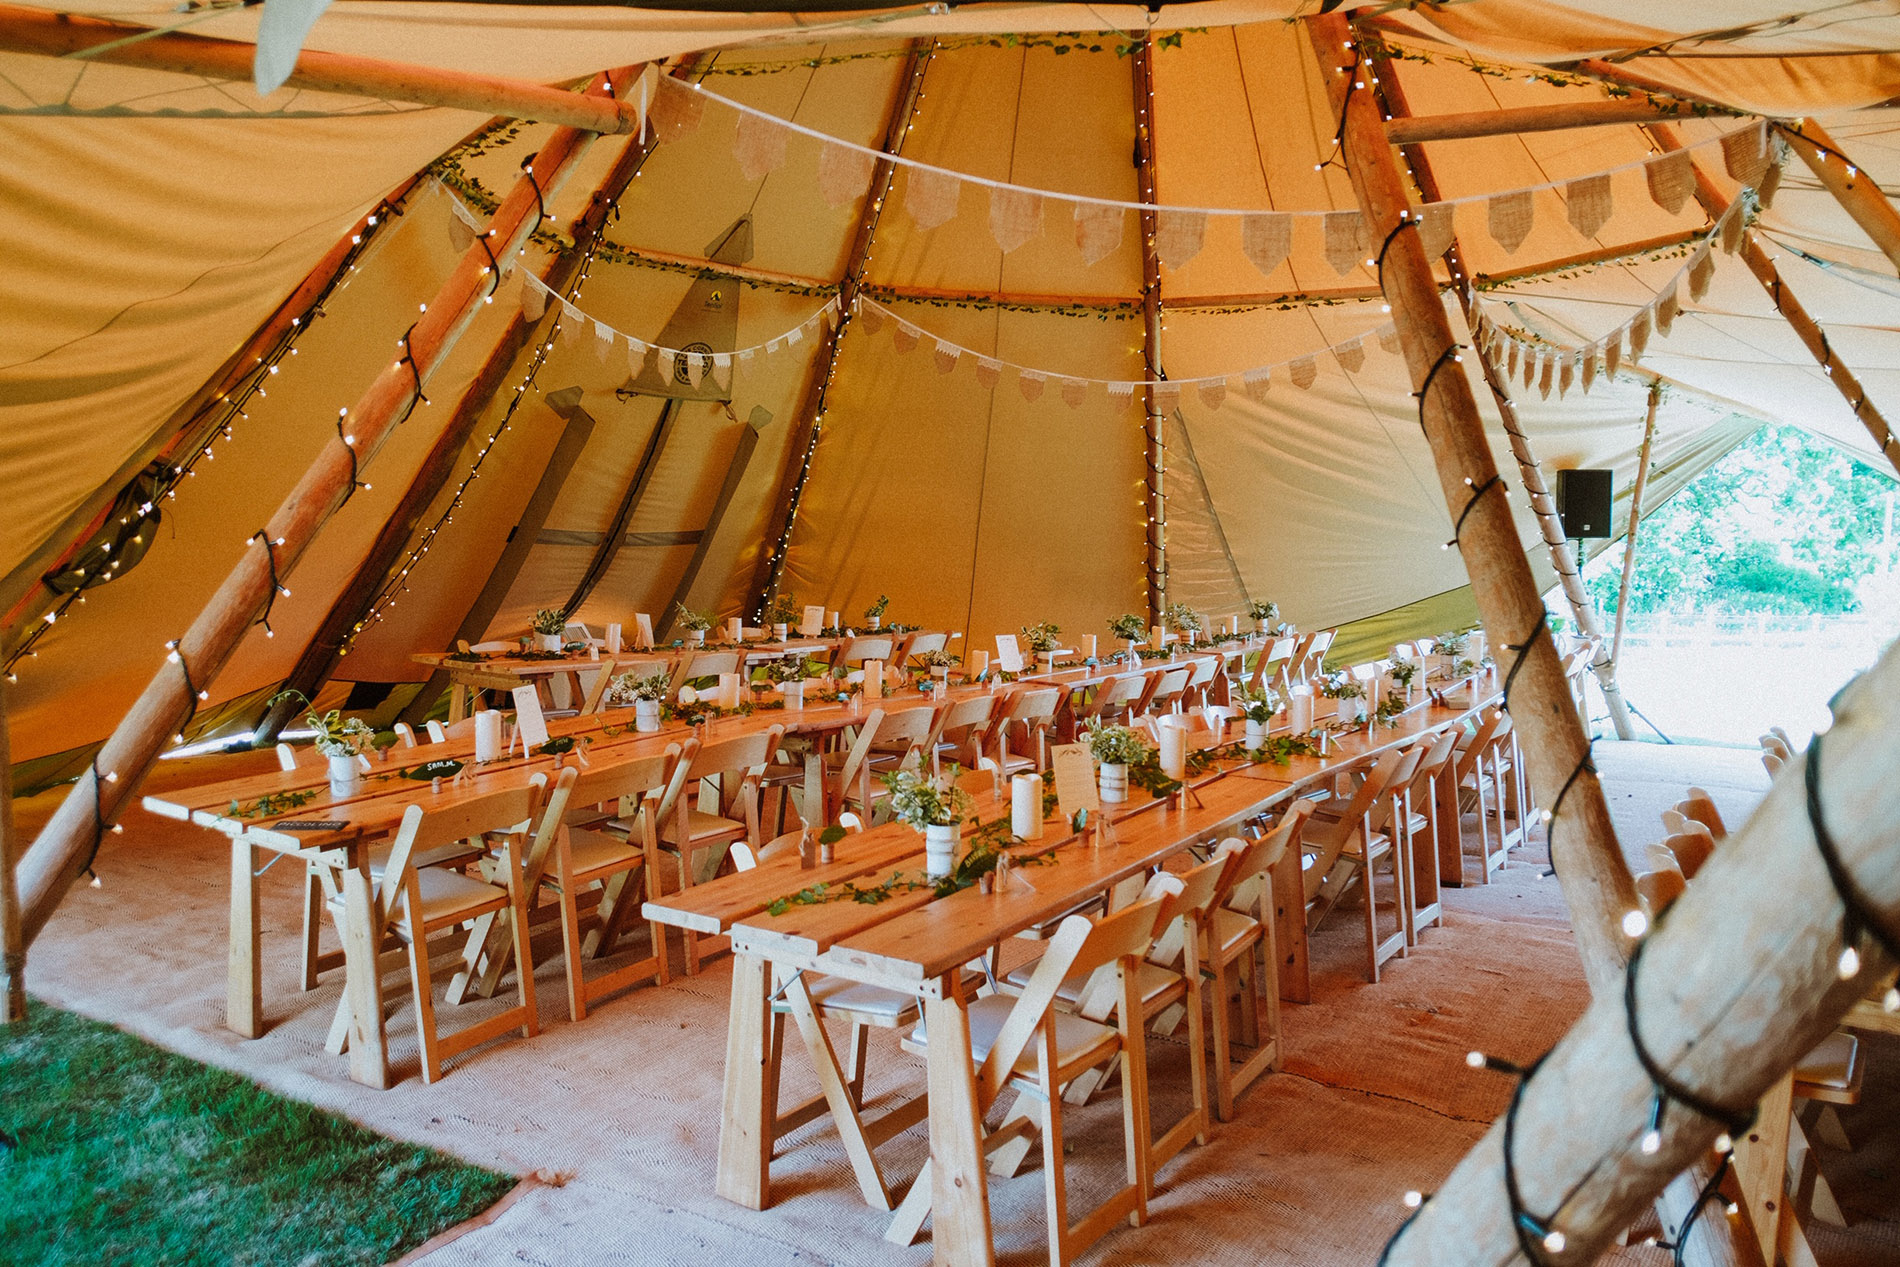 Tipi interior with seating